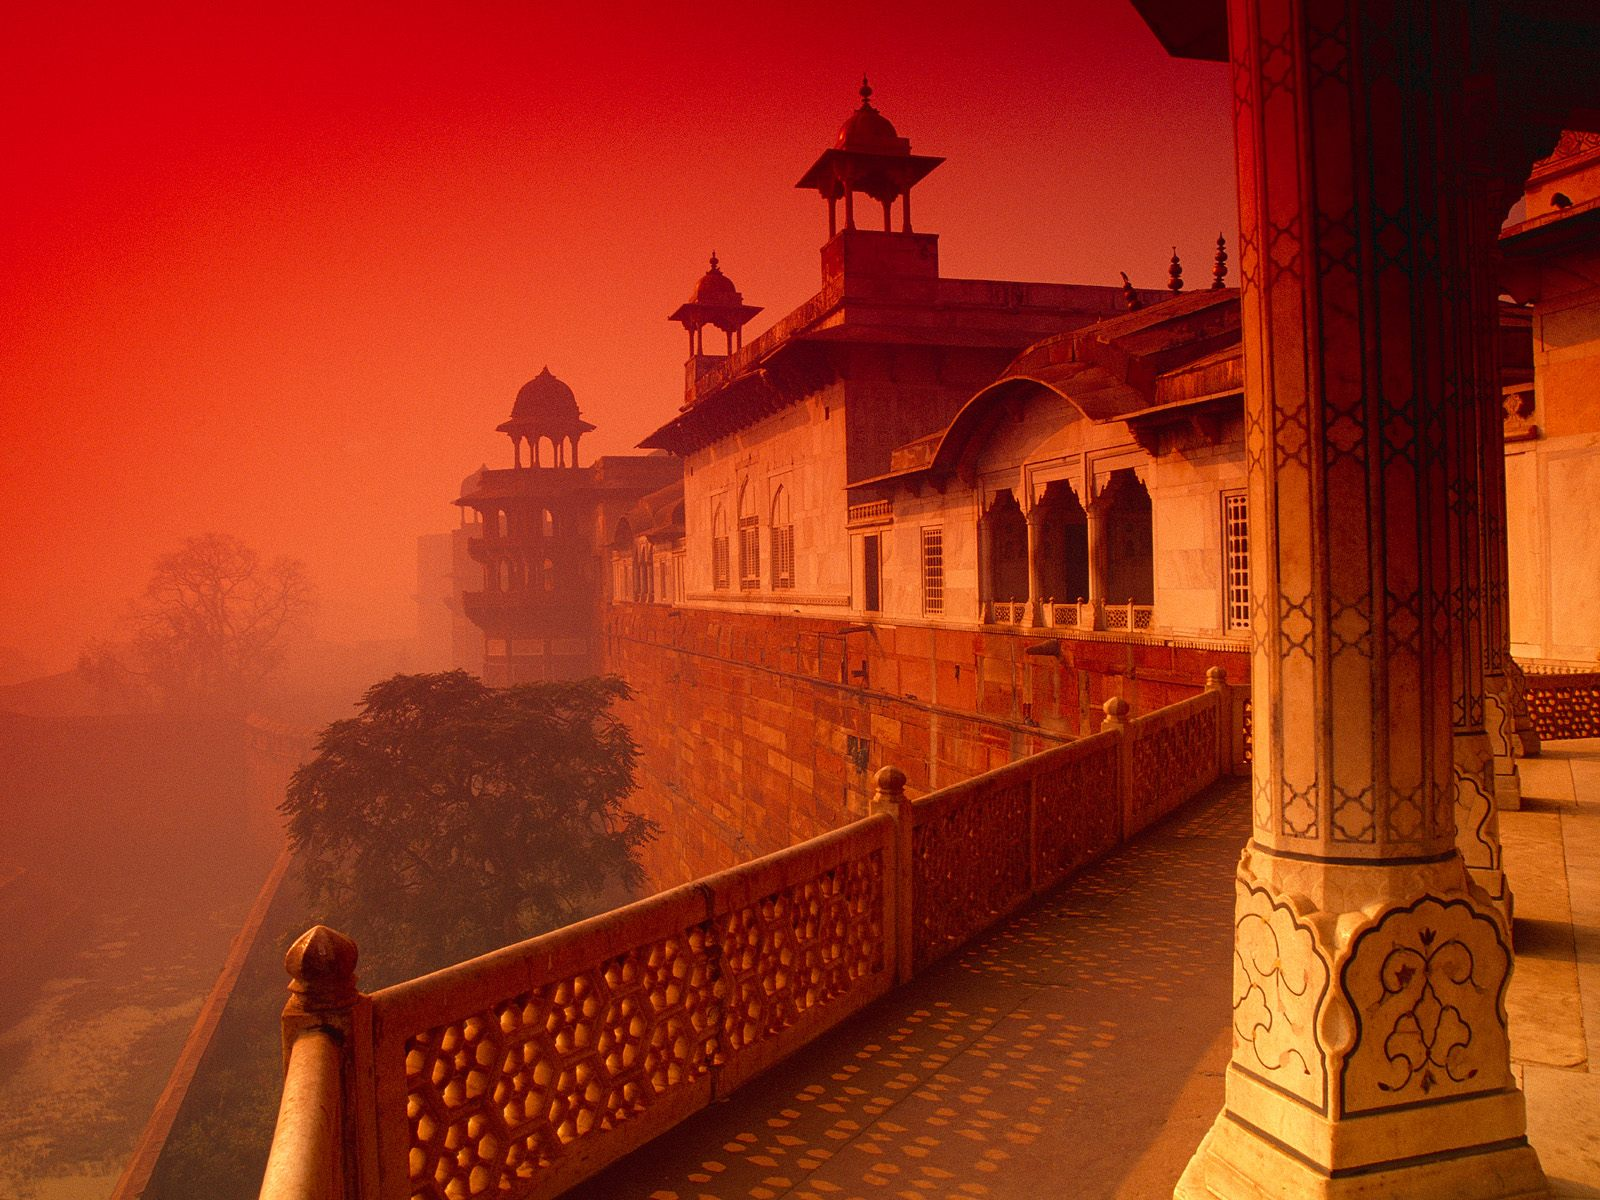 Red Fort, India (Delhi)